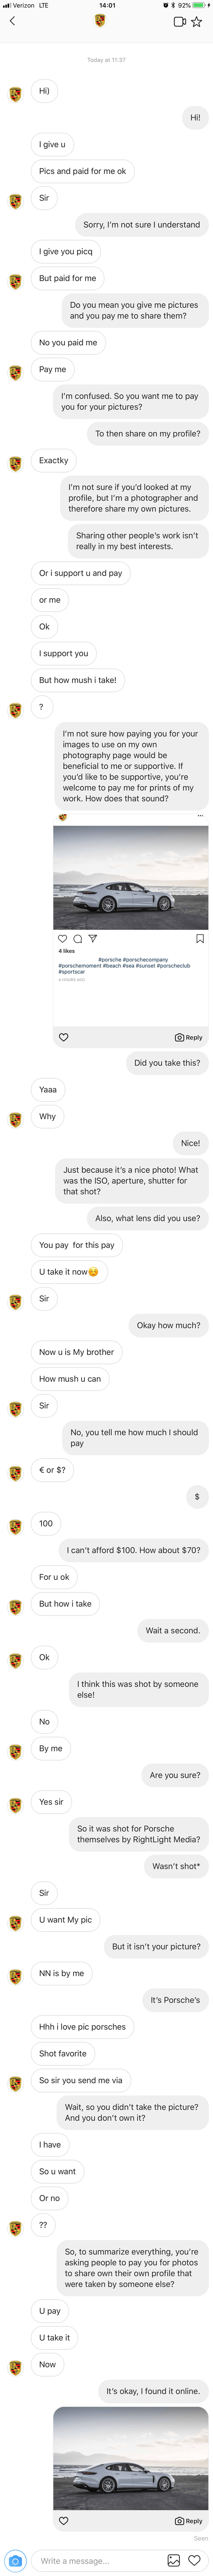 idiot online trying to get a photographer to pay for a online picture of a porsche that he is trying to claim as his own